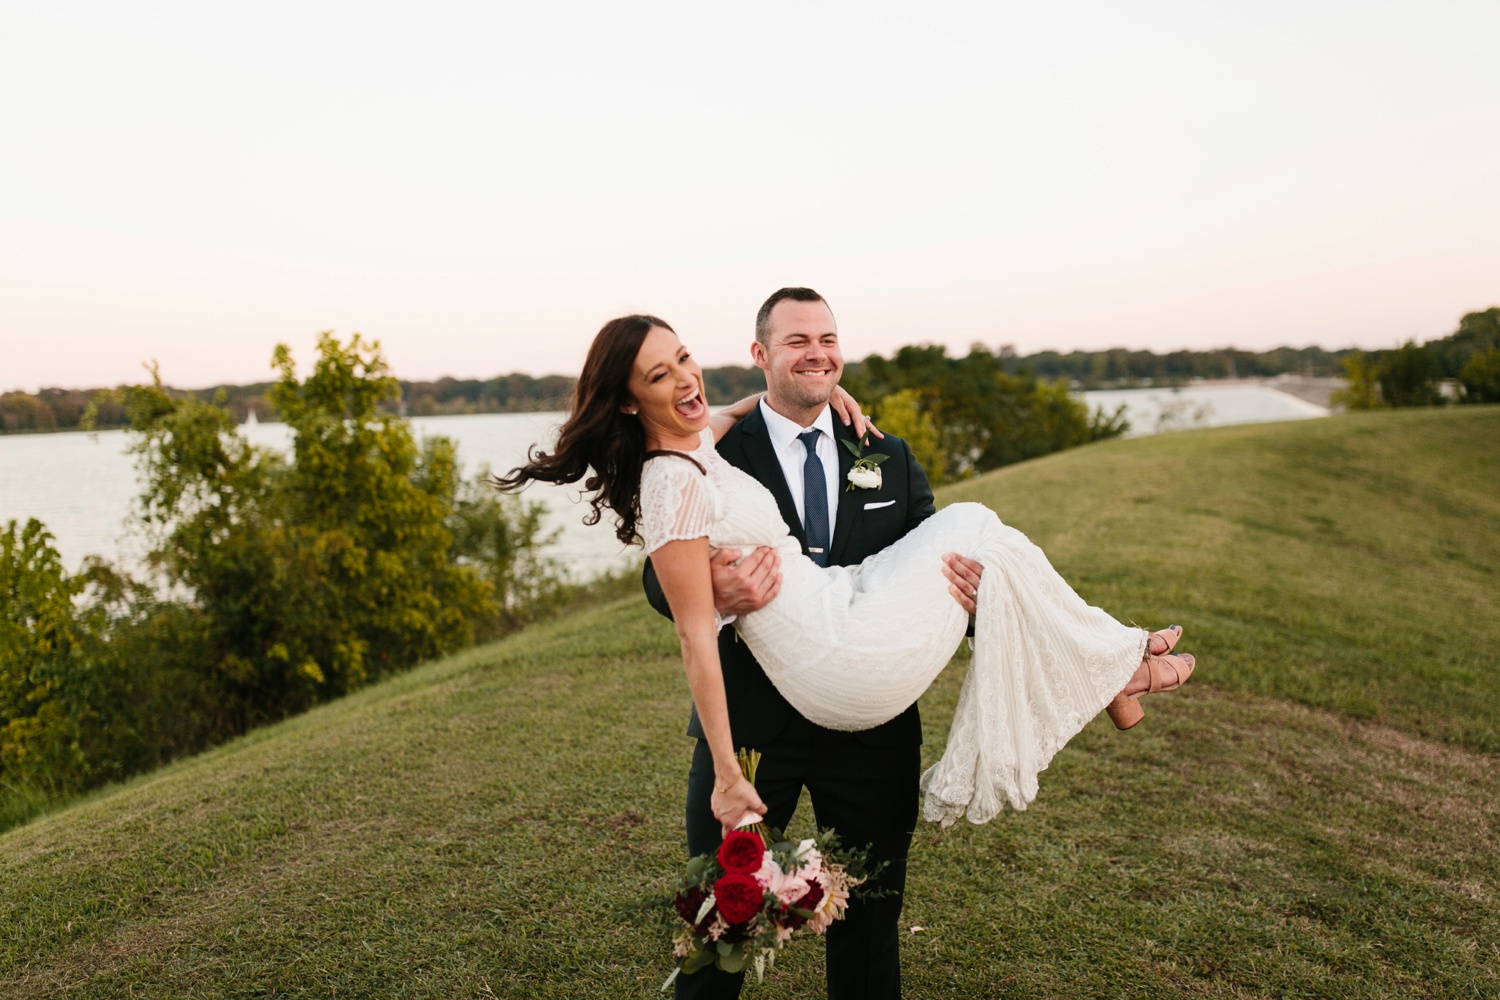 Kadee + Tyler | a raw, emotional wedding at the Filter Building on White Rock Lake in Dallas, TX by North Texas Wedding Photographer, Rachel Meagan Photography 188